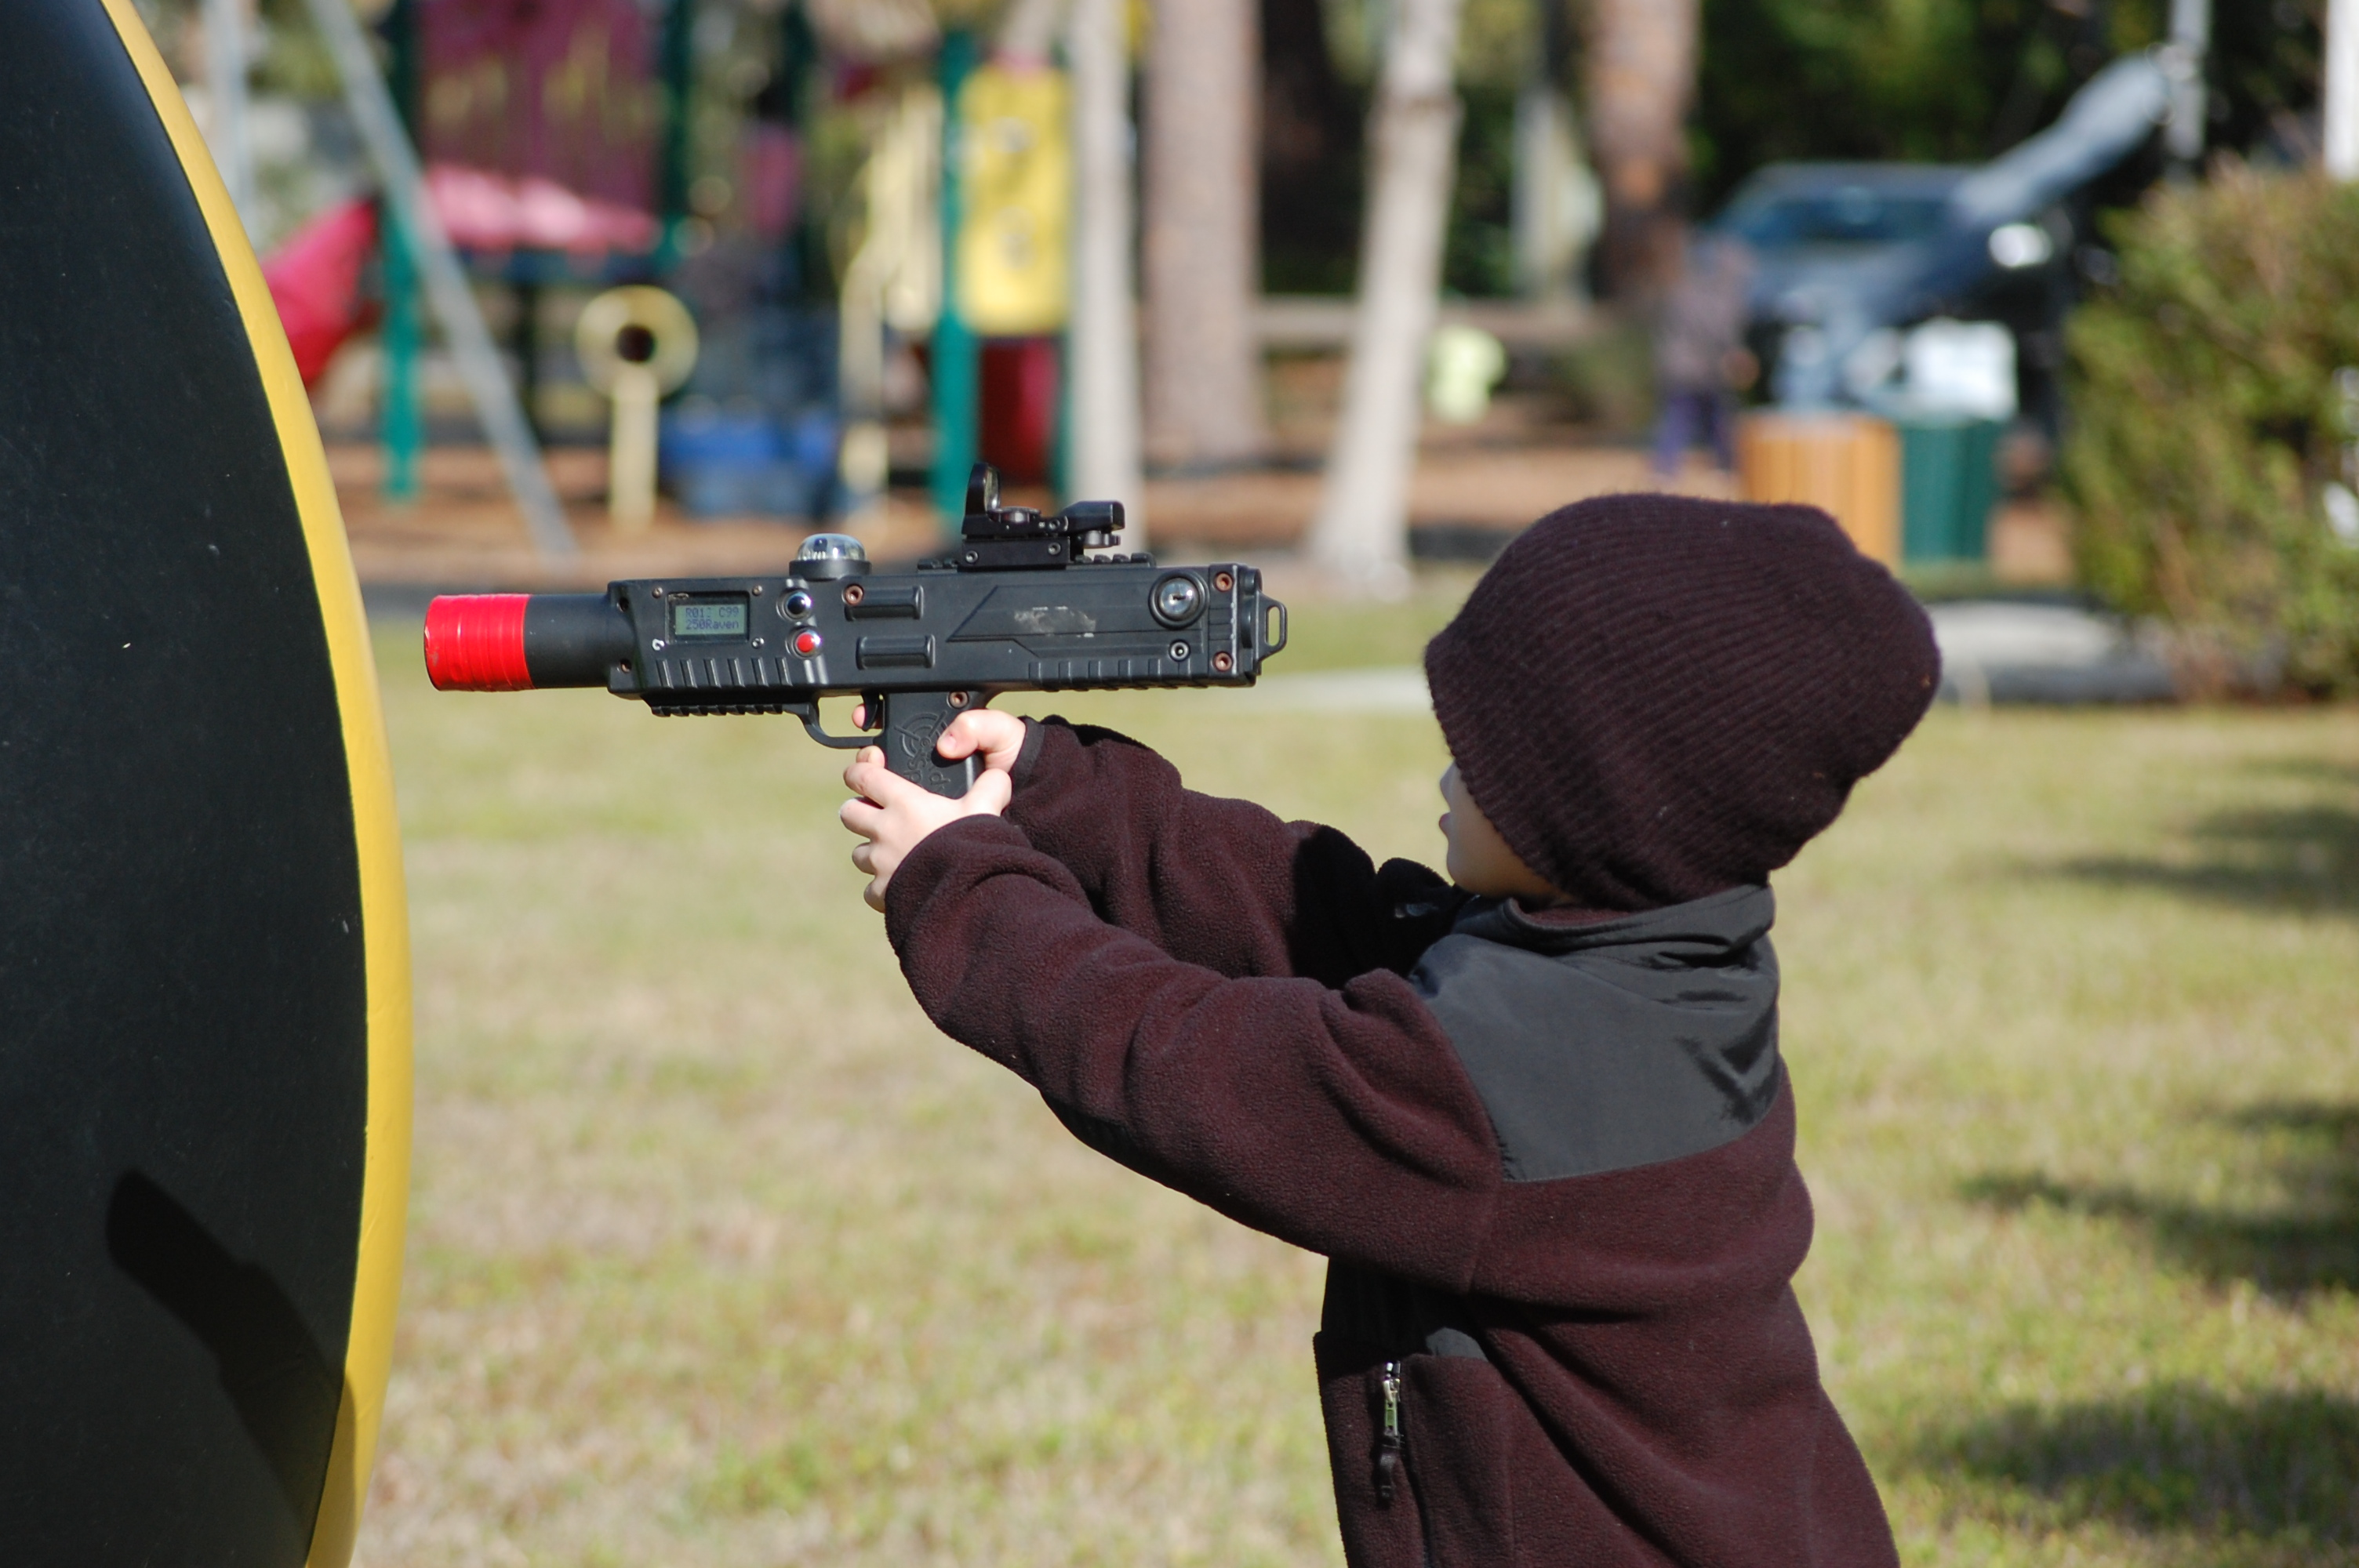 Mobile Laser Tag in Sarasota, FL